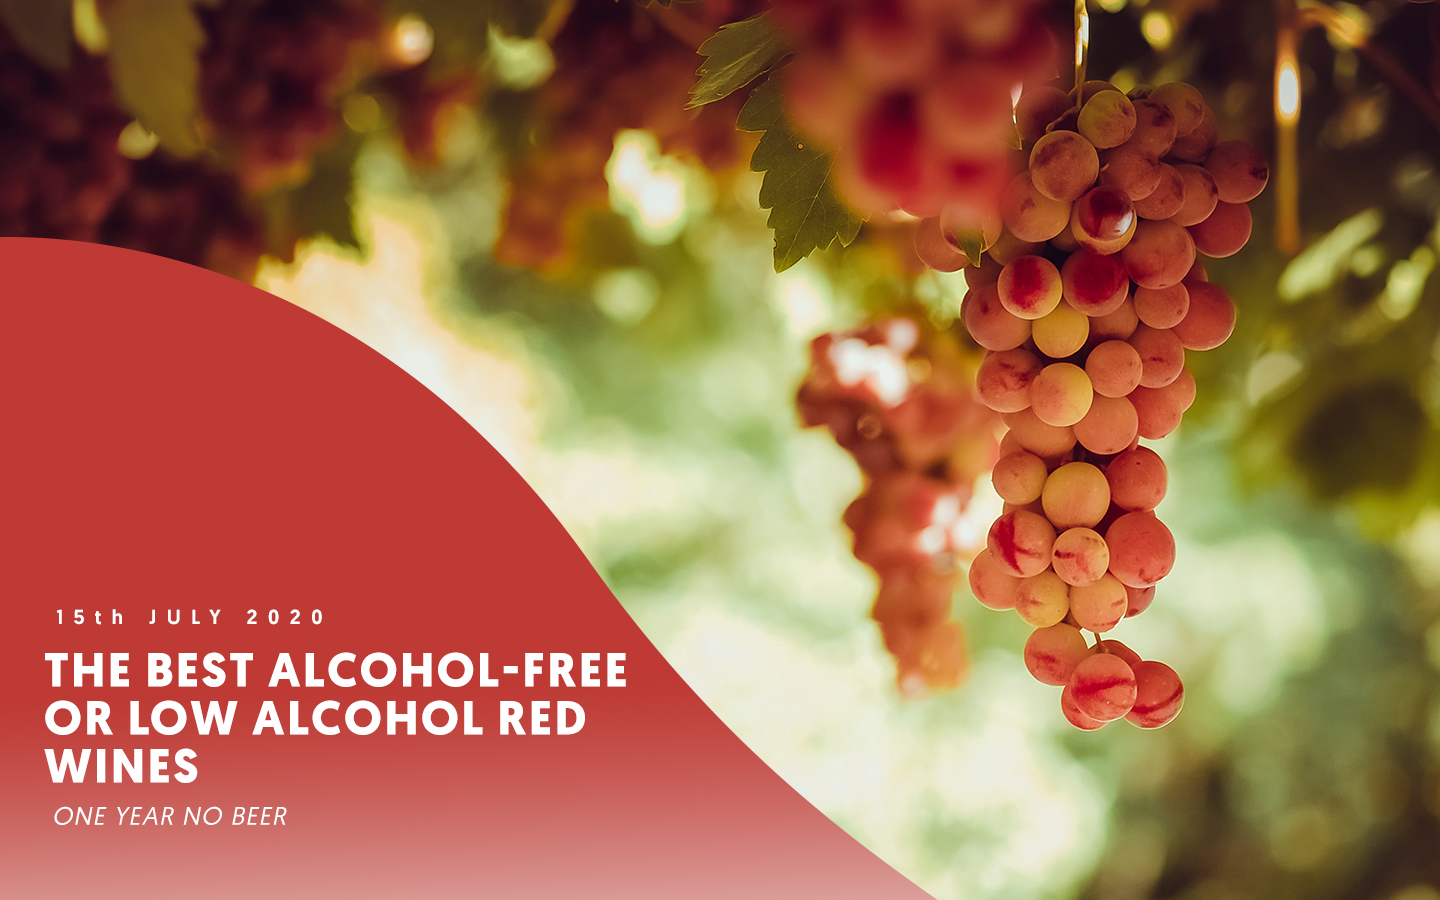 The best alcohol-free or low alcohol red wines